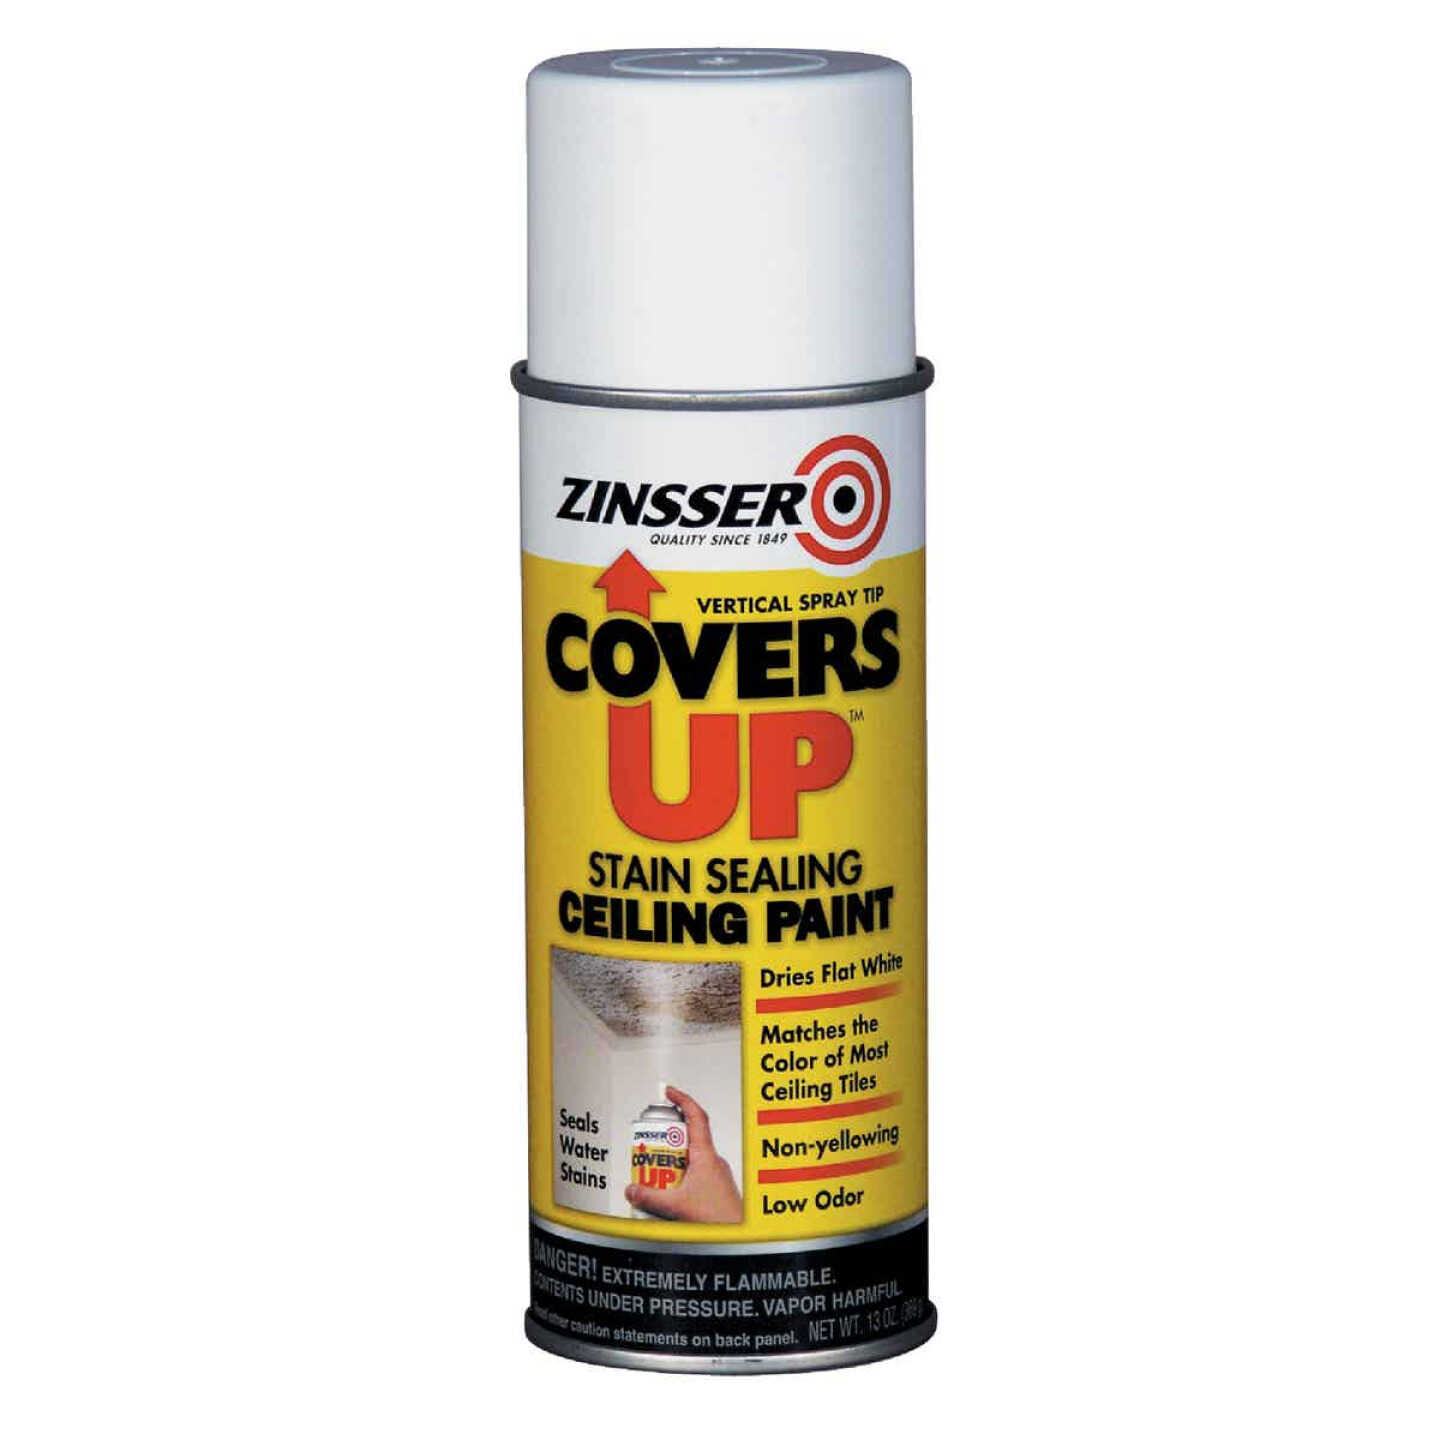 Zinsser COVERS UP Stain Sealing Spray Paint Primer, White, 13 Oz. Image 1